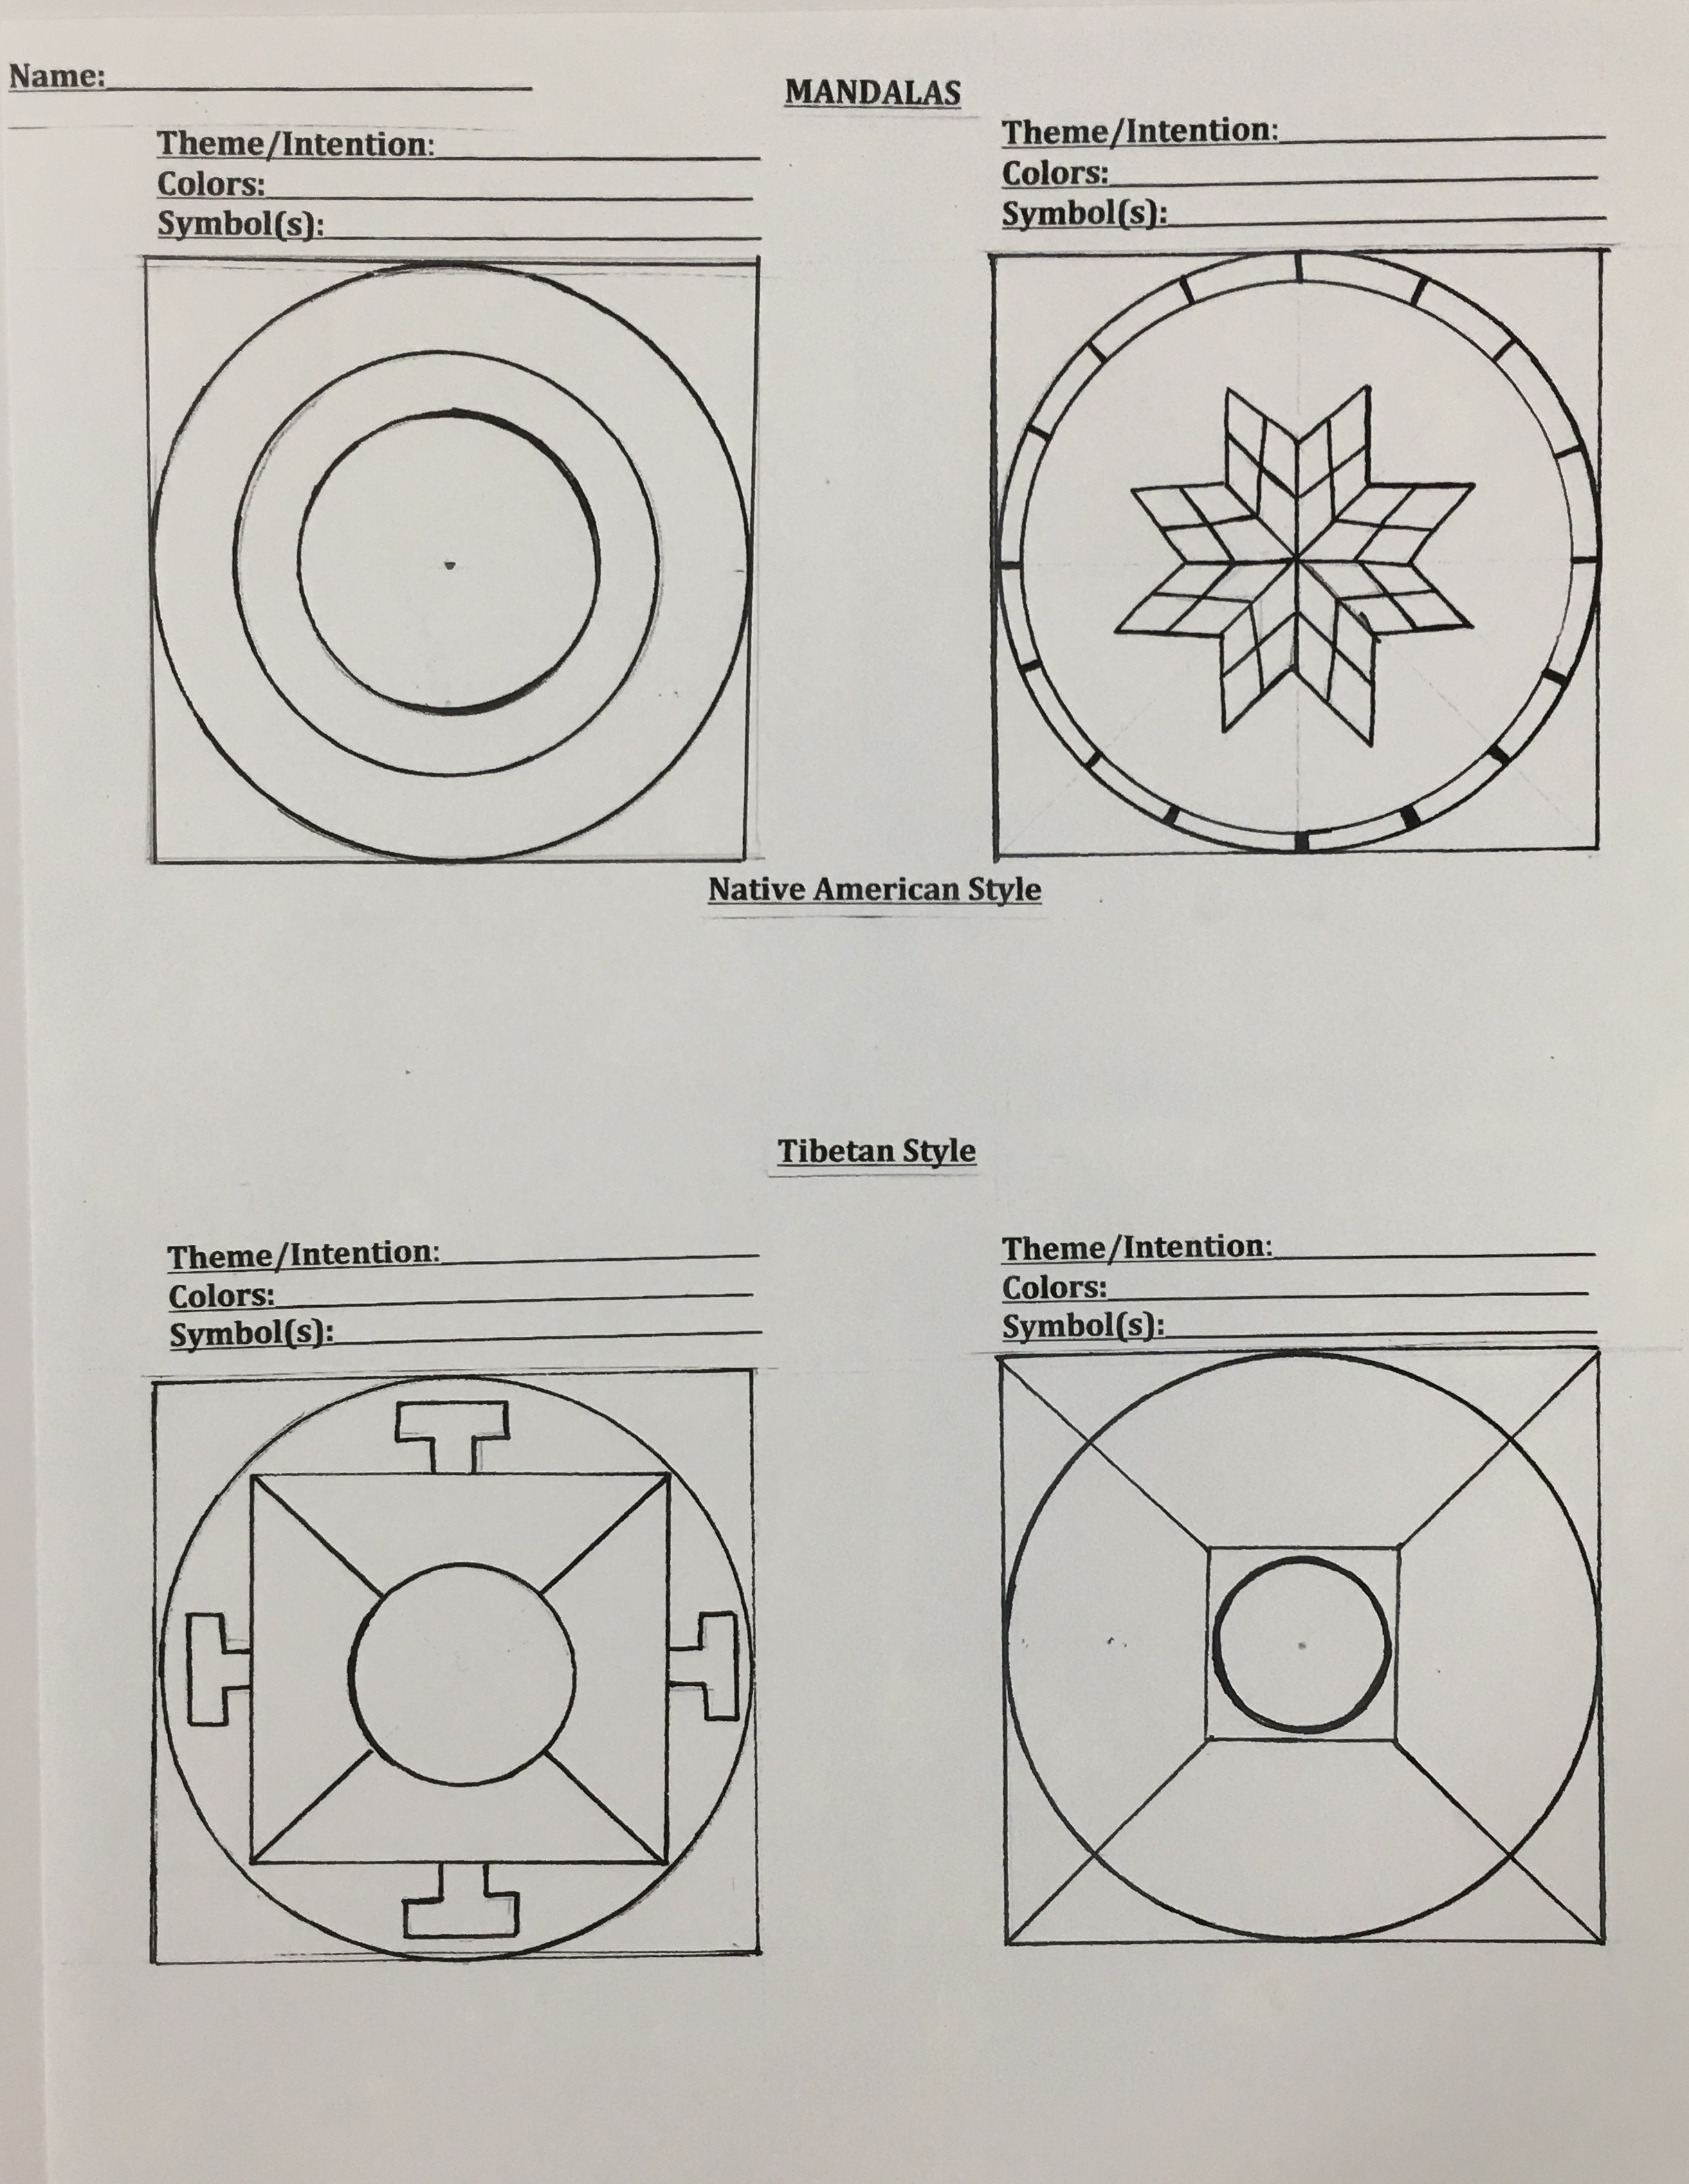 Sketches - These outlines show a starting point for a mandala design.